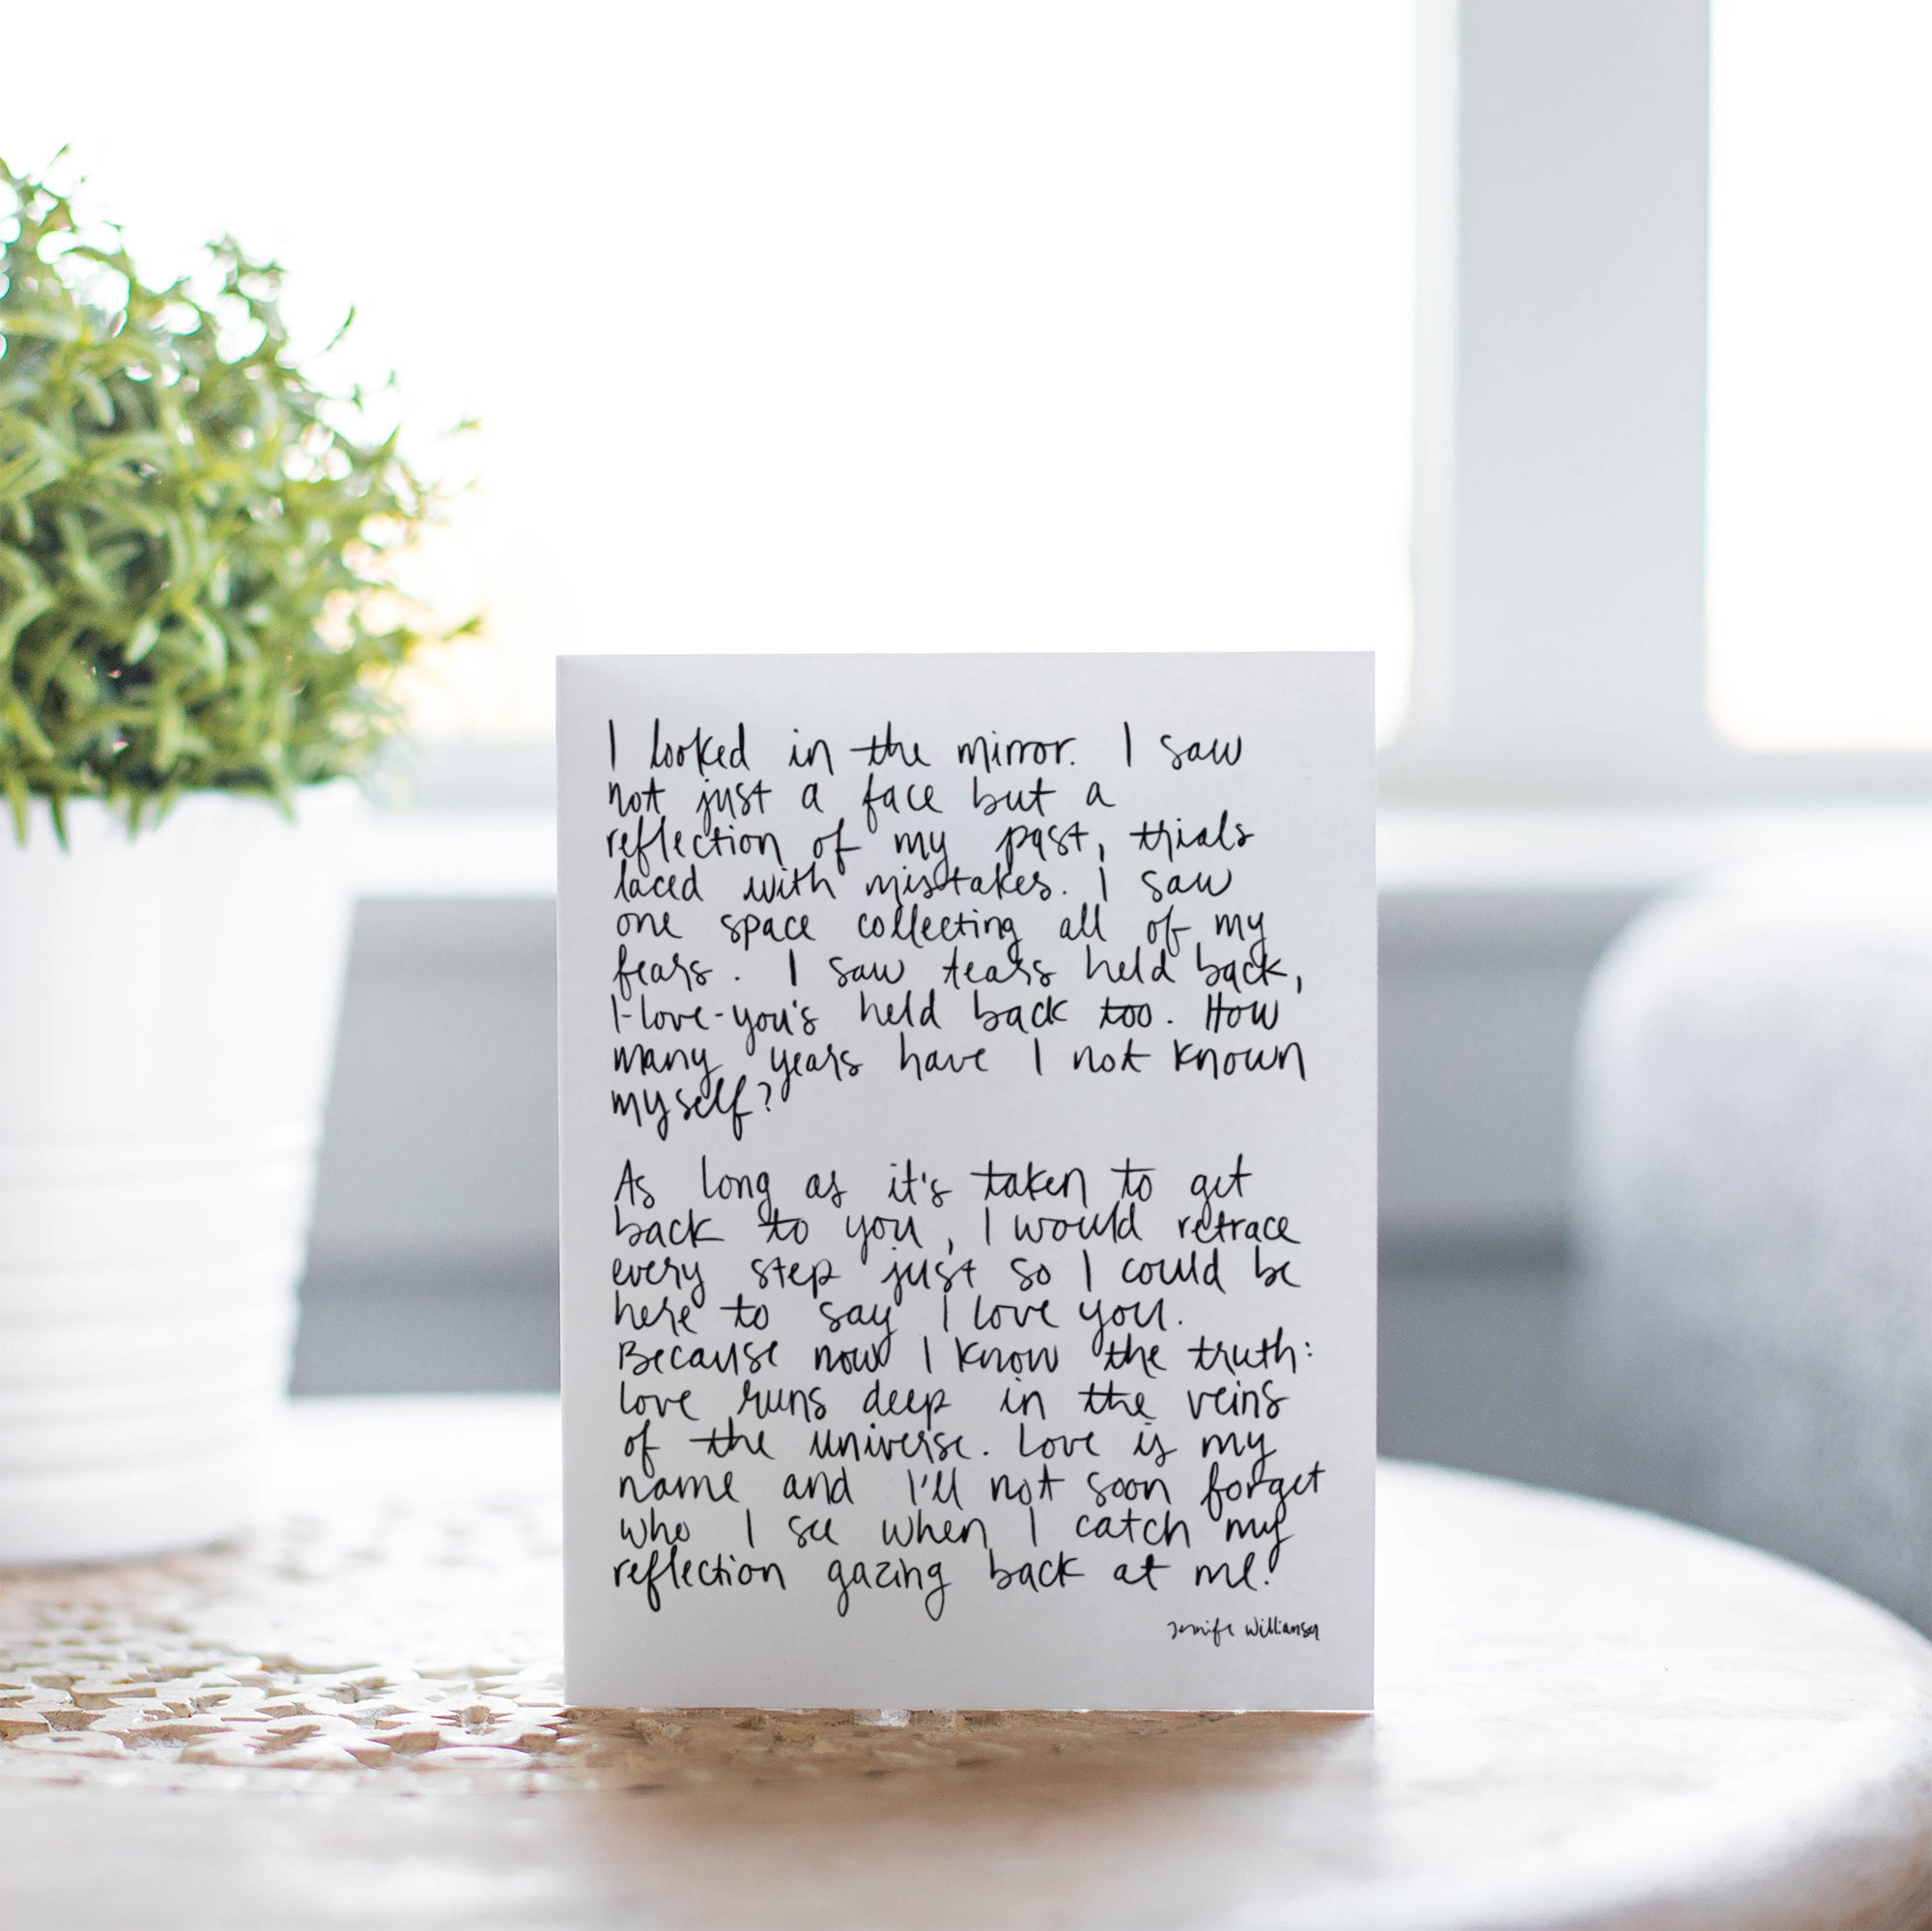 Self Love Hand Lettered Poetry Encouragement Card